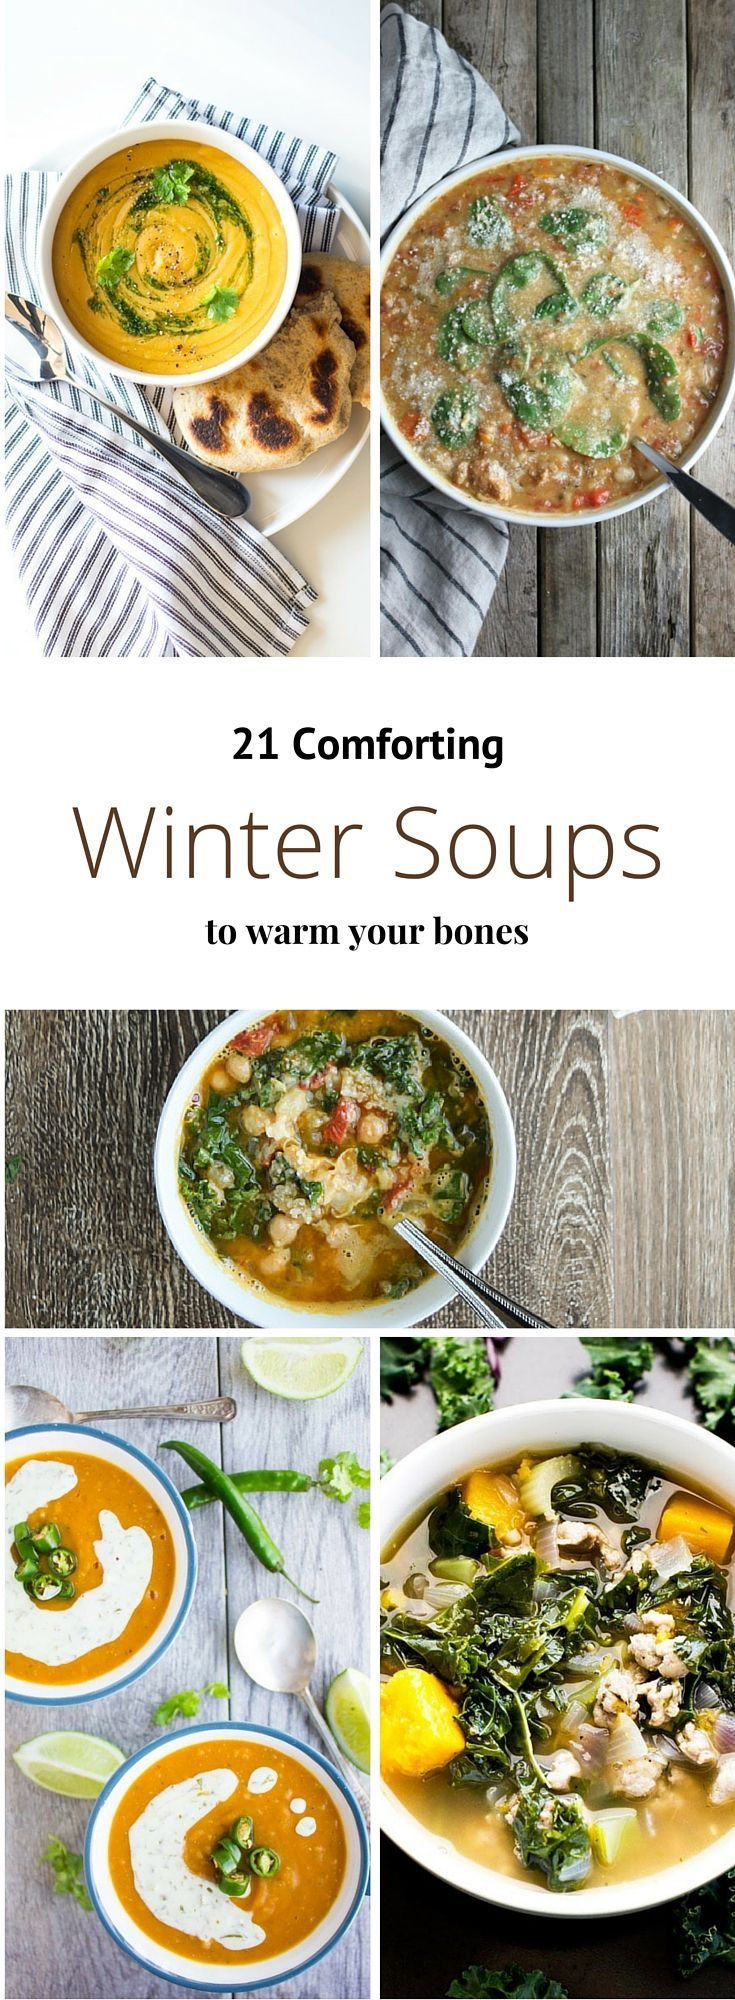 21 Comforting Winter Soups to Warm Your Bones from Buzzfeed